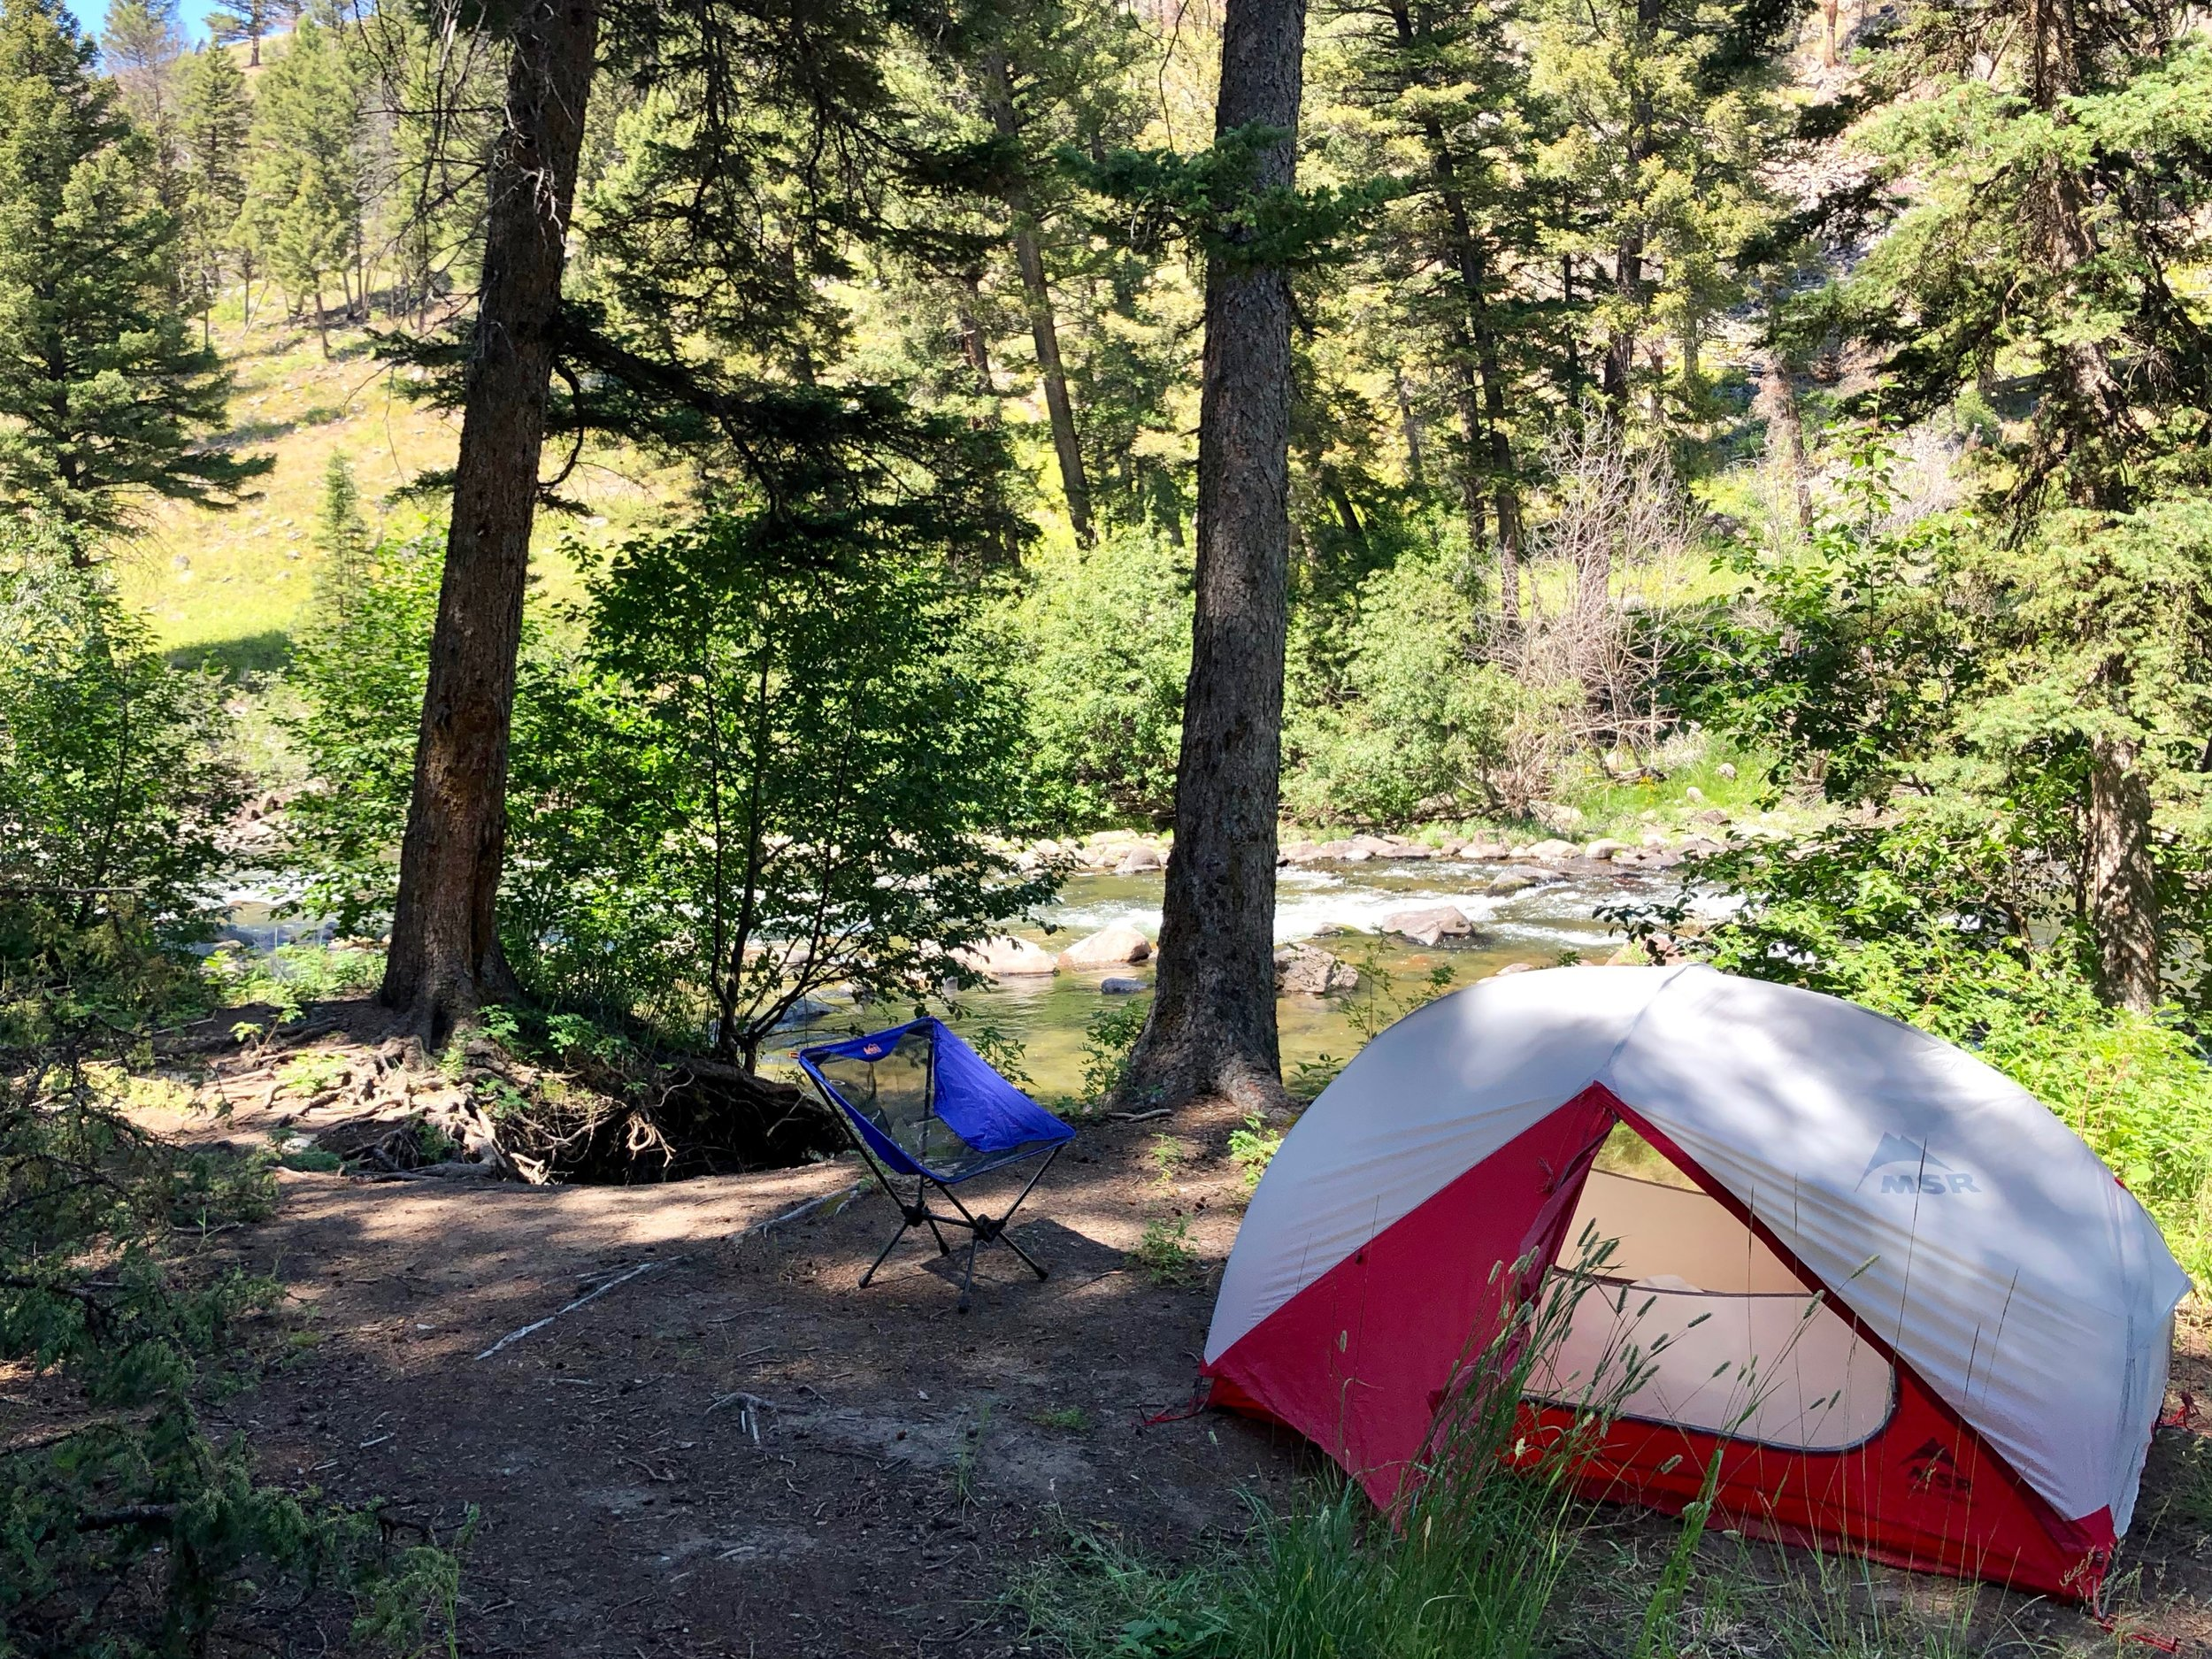 A perfect site by the Slough Creek